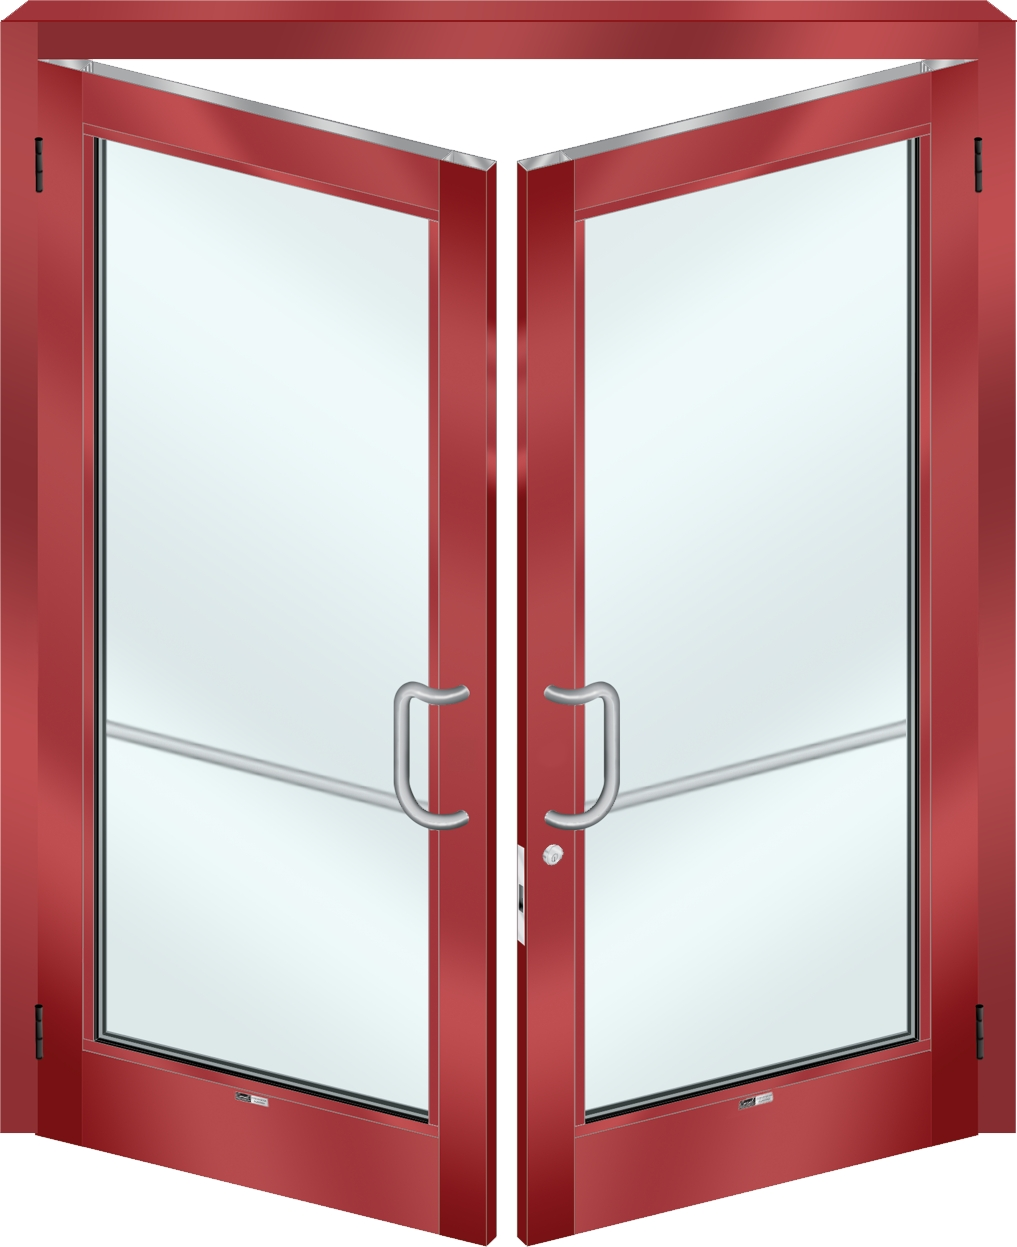 Commercial Entrance Doors : Aluminum entrance door systems coral architectural